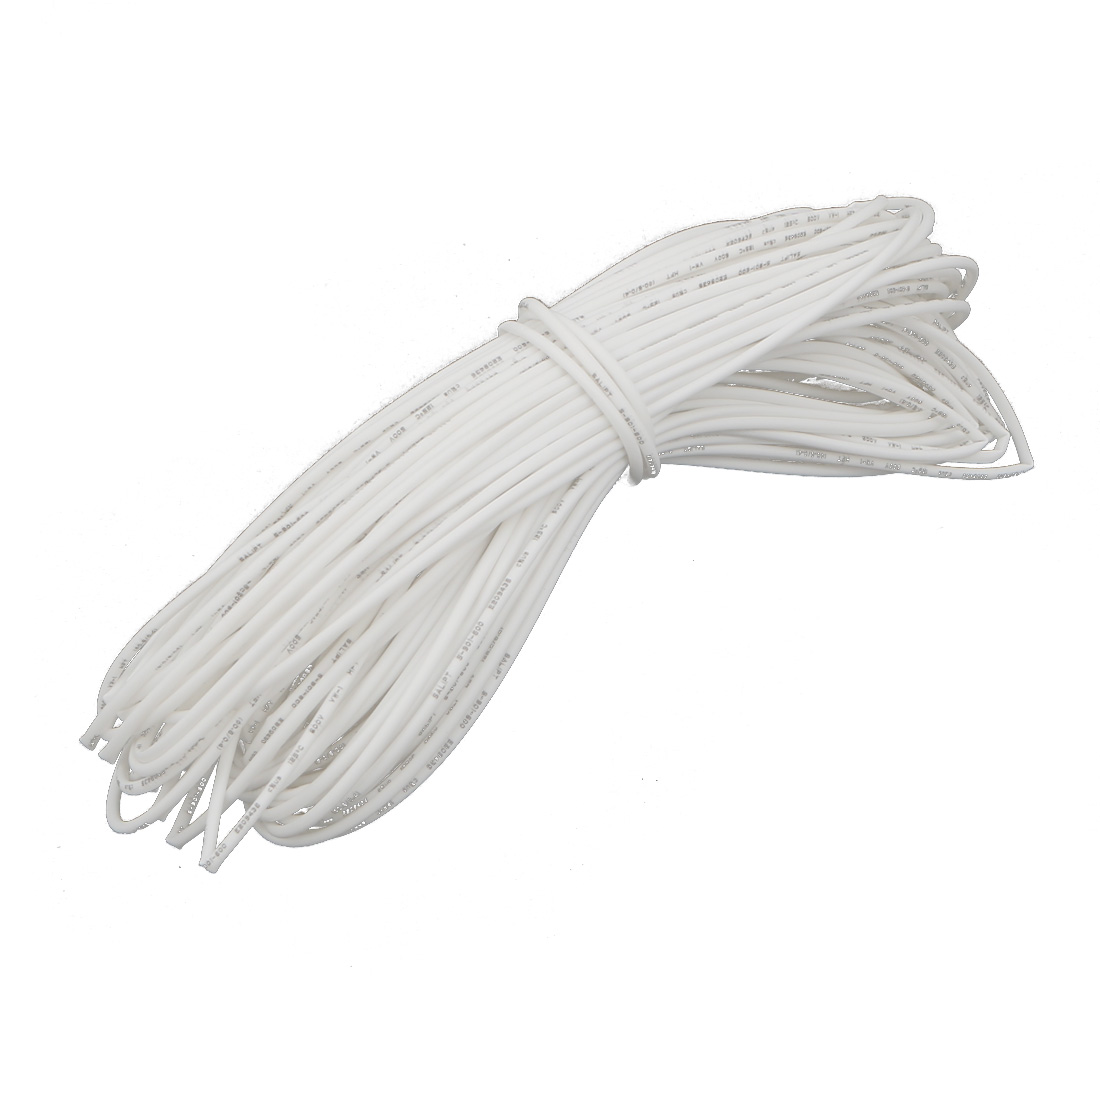 15M Length 0.6mm Inner Dia Polyolefin Insulated Heat Shrink Tube Wire Wrap White